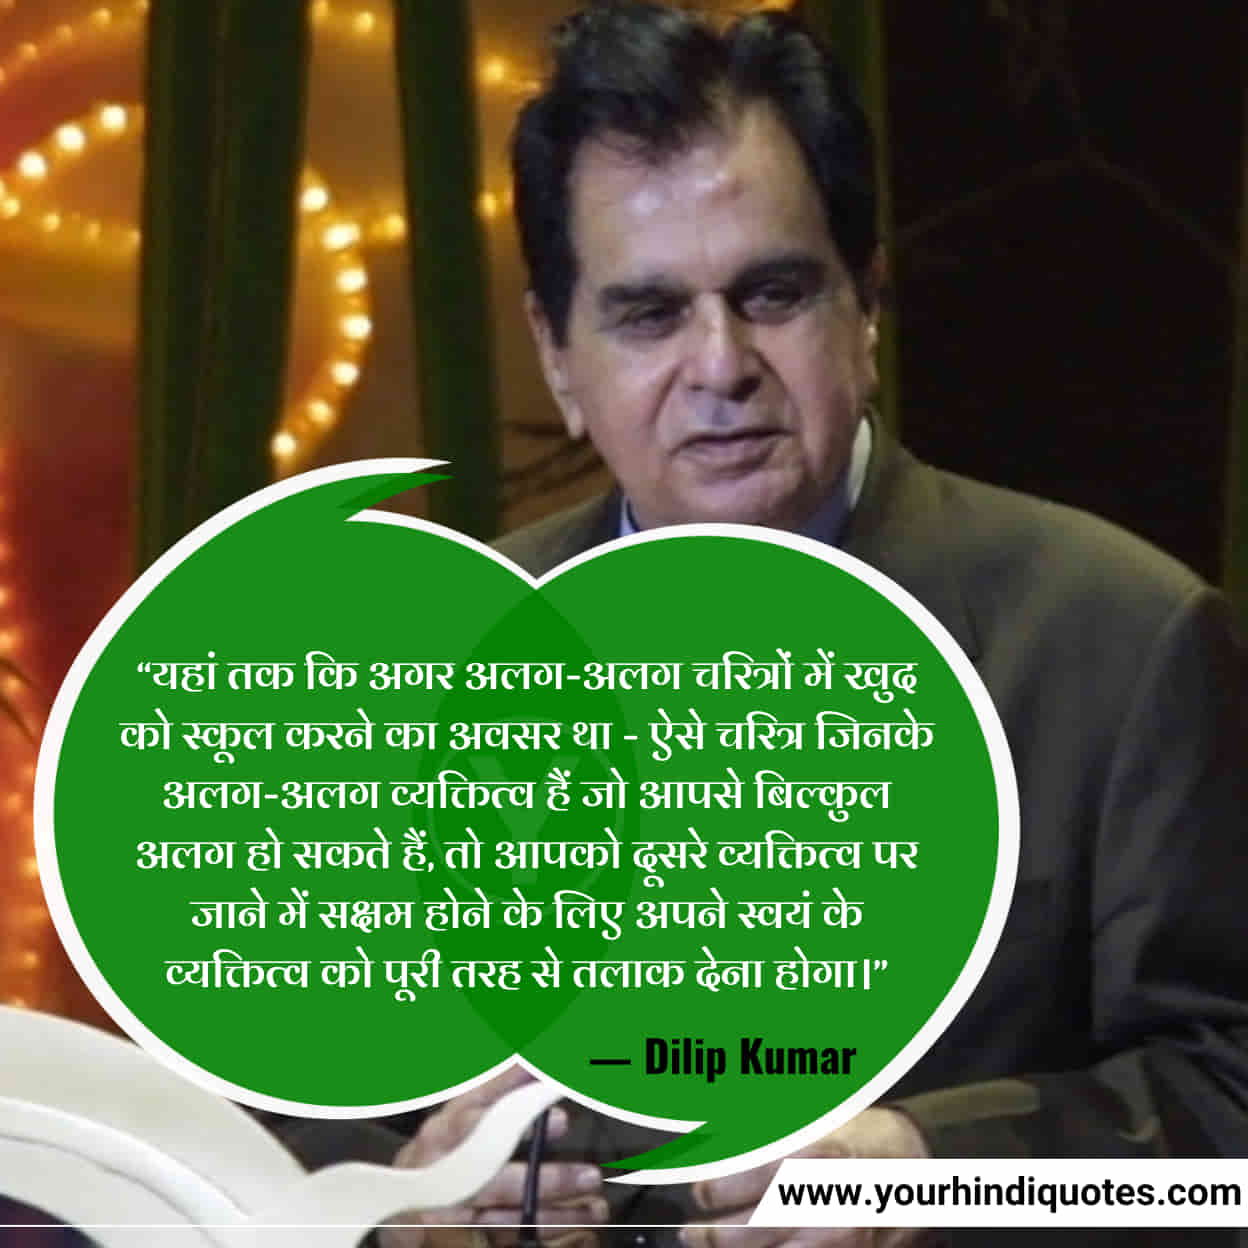 Best Quotes of Dilip Kumar